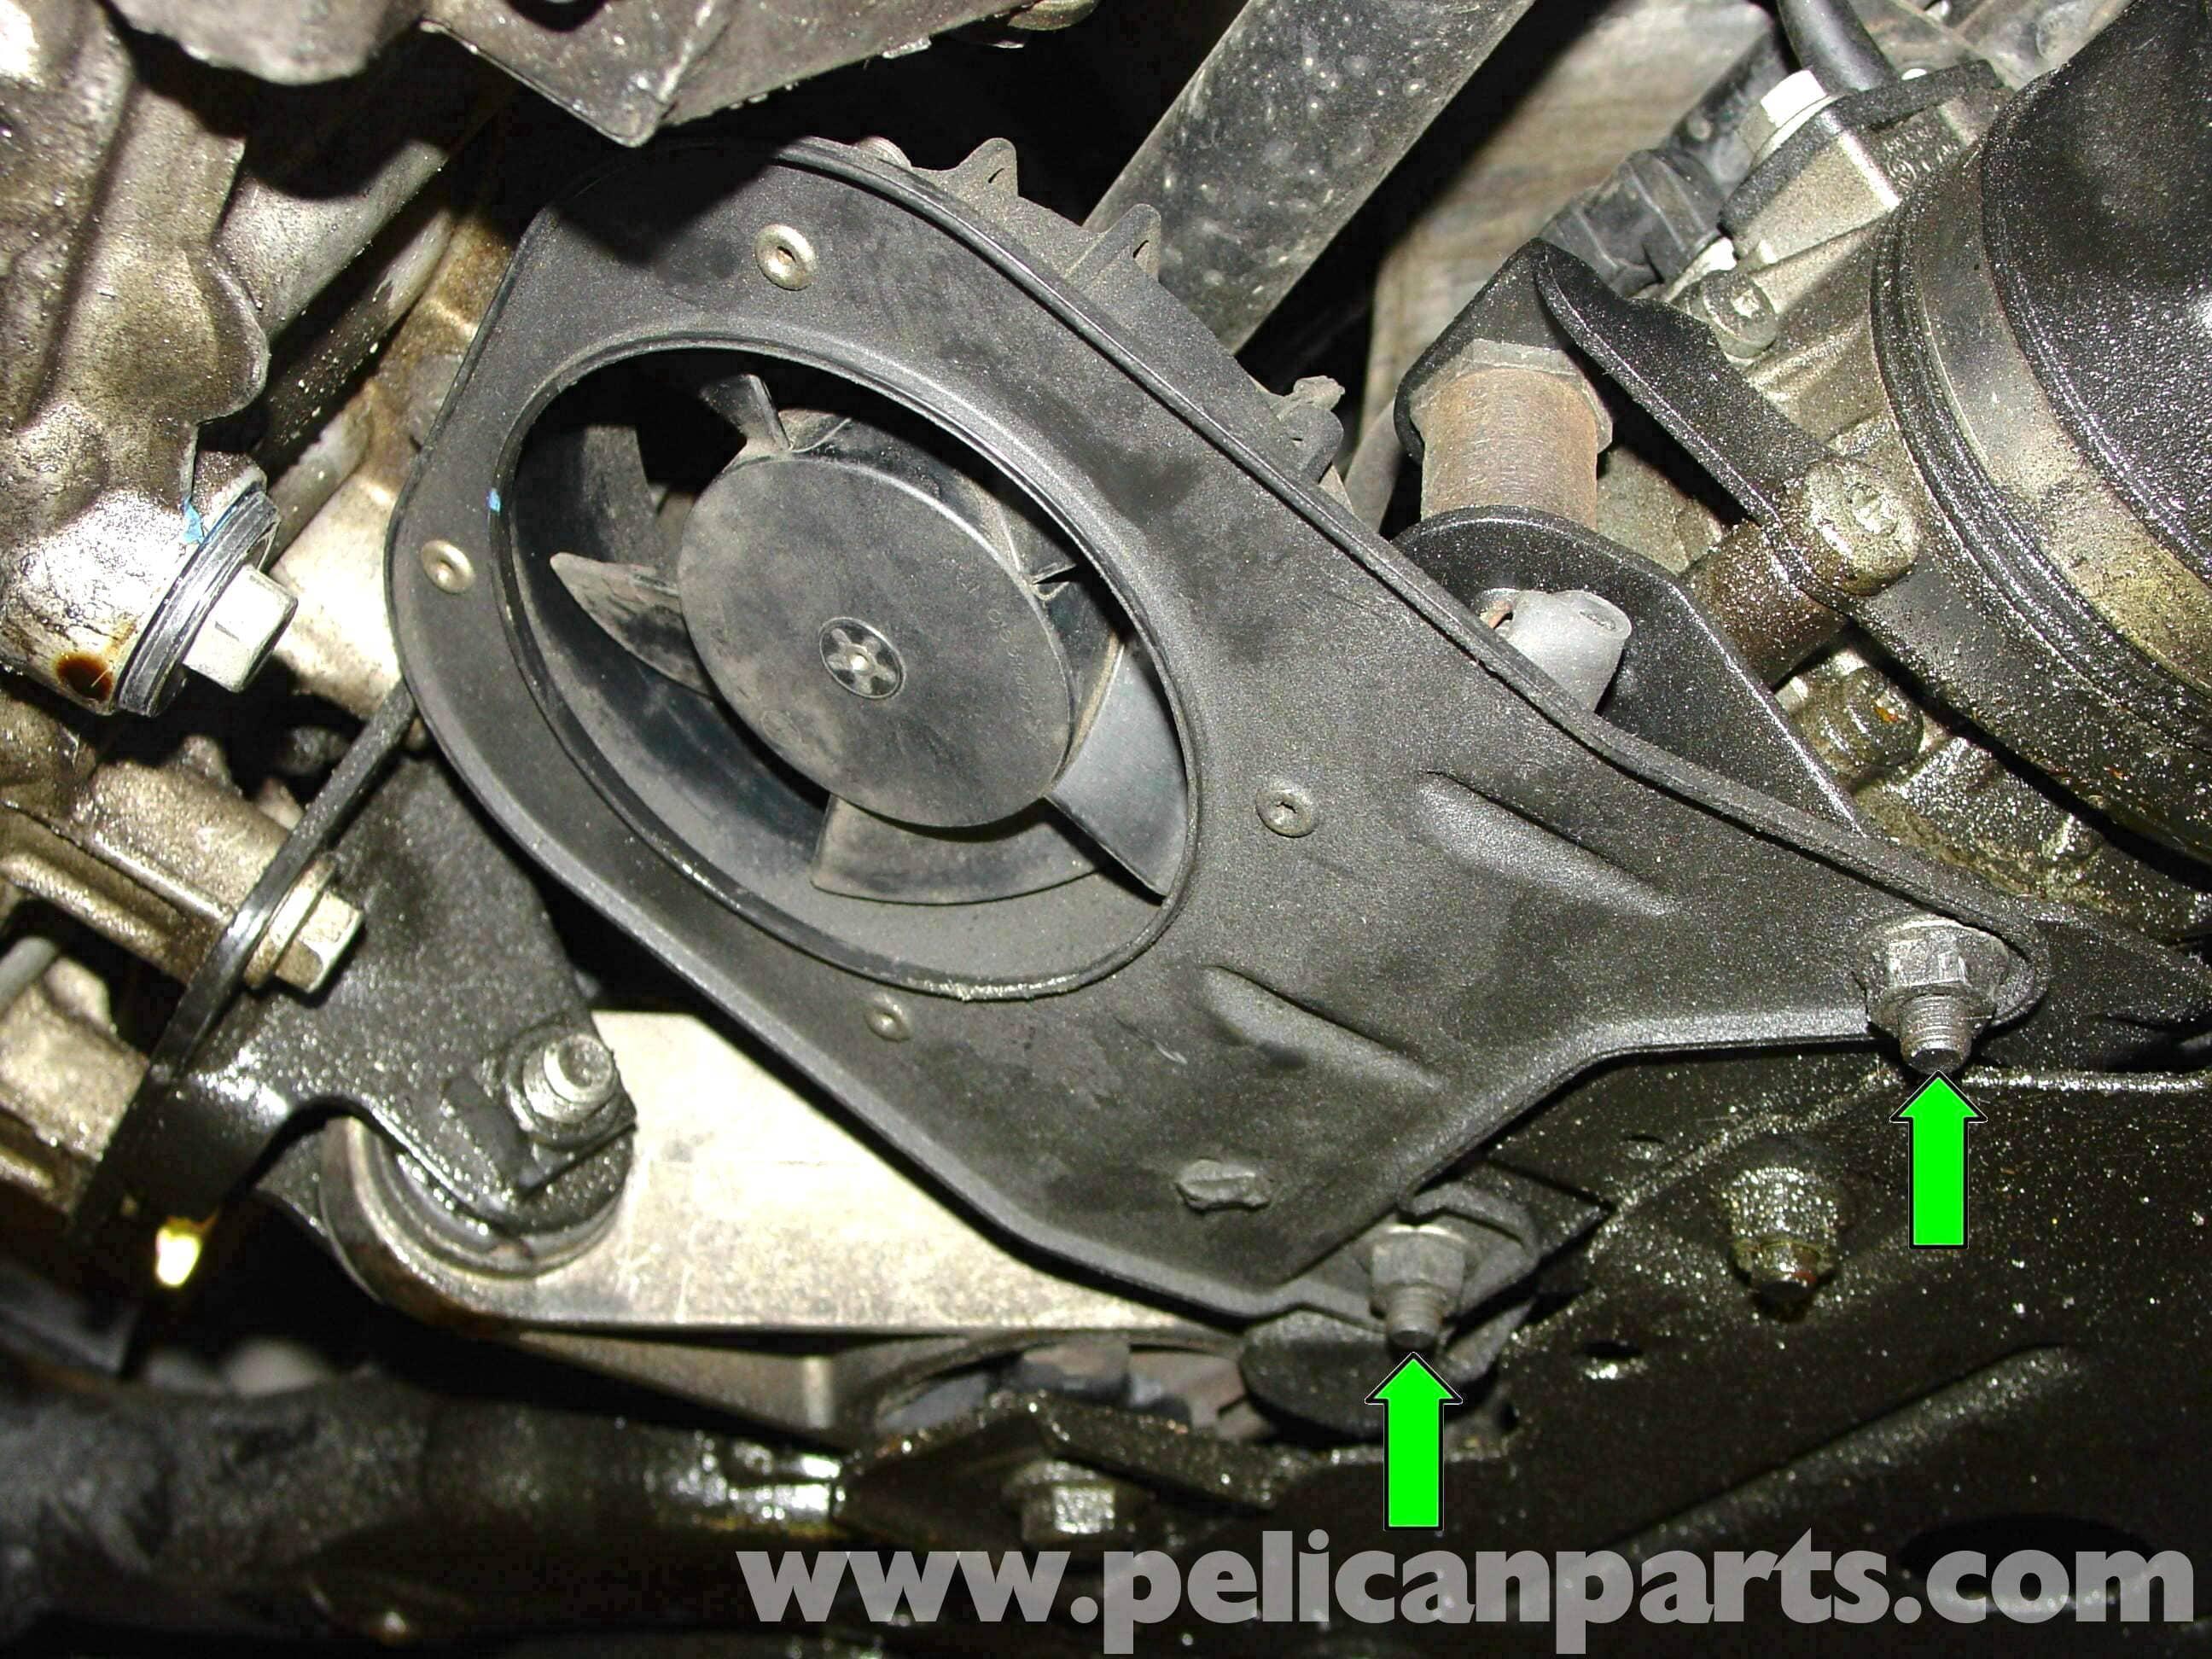 Volkswagen Transporter 3 2 2009 Specs And Images additionally 2002 Volvo S40 Engine Diagram additionally 38 ELEC Starter Replacement as well Watch in addition Volkswagen Transporter 3 2 2004 Specs And Images. on 2007 vw jetta transmission diagram